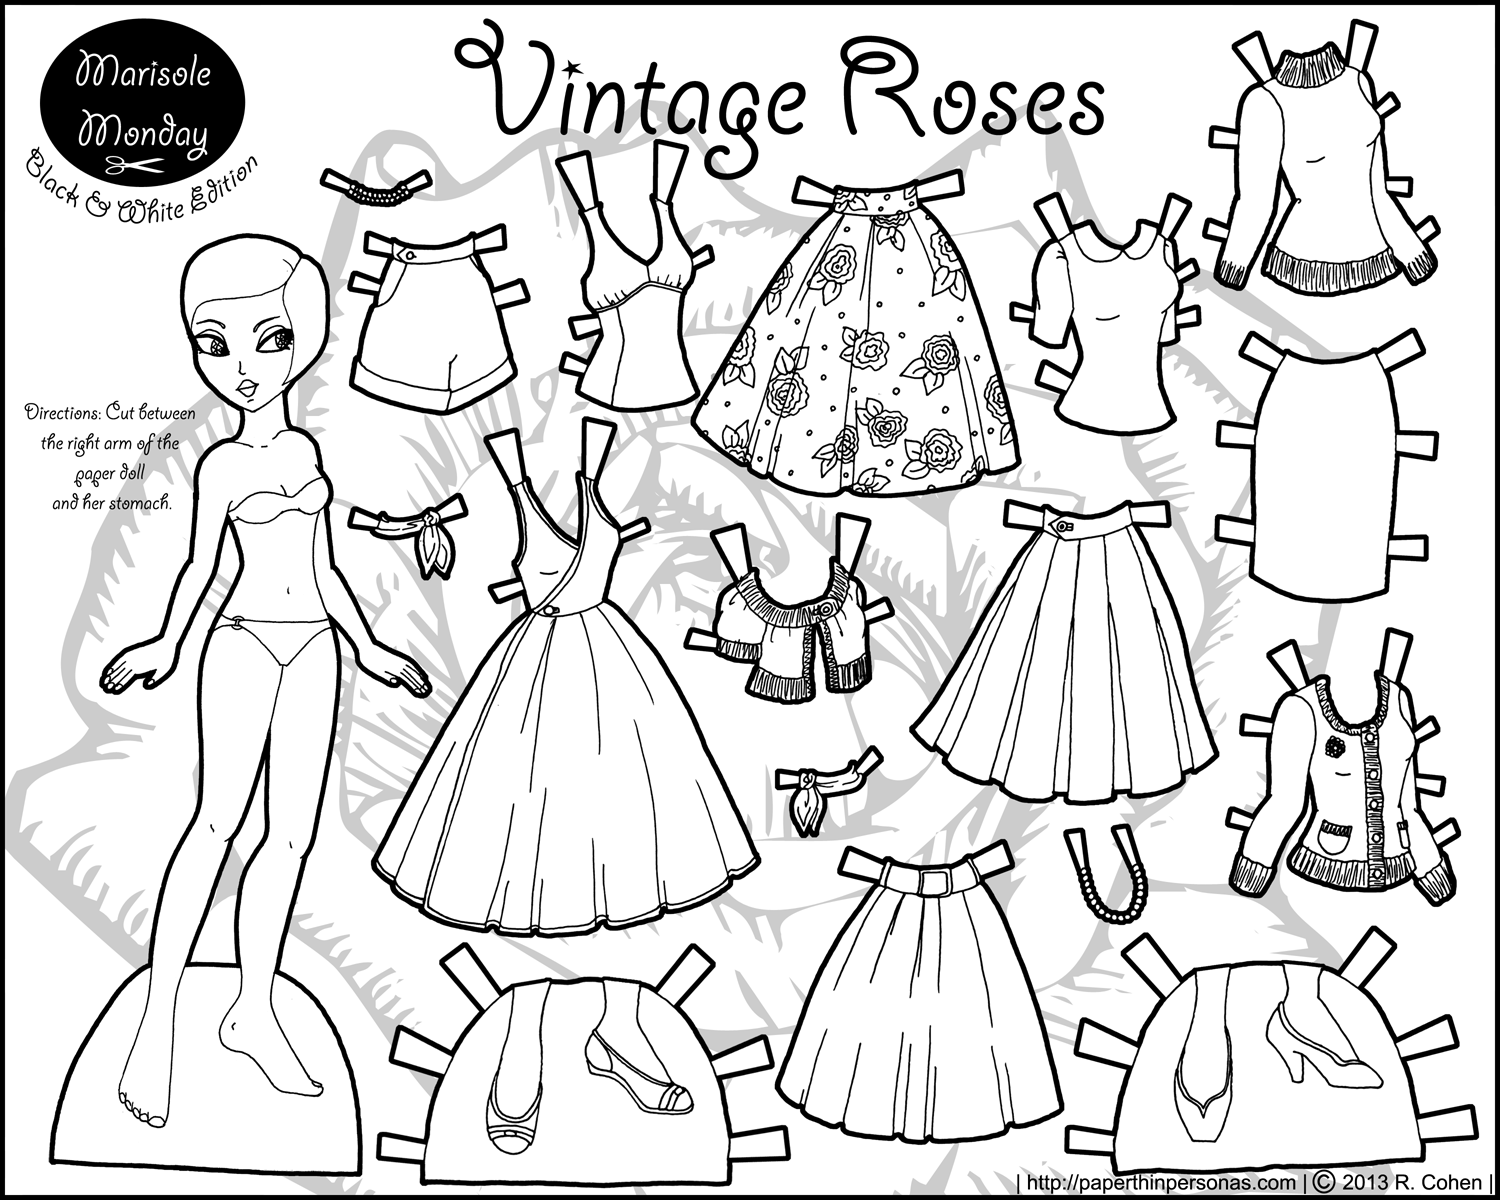 marisole archives page 6 of 15 paper thin personas Vintage Sewing Patterns Girls Dresses marisole monday vintage roses